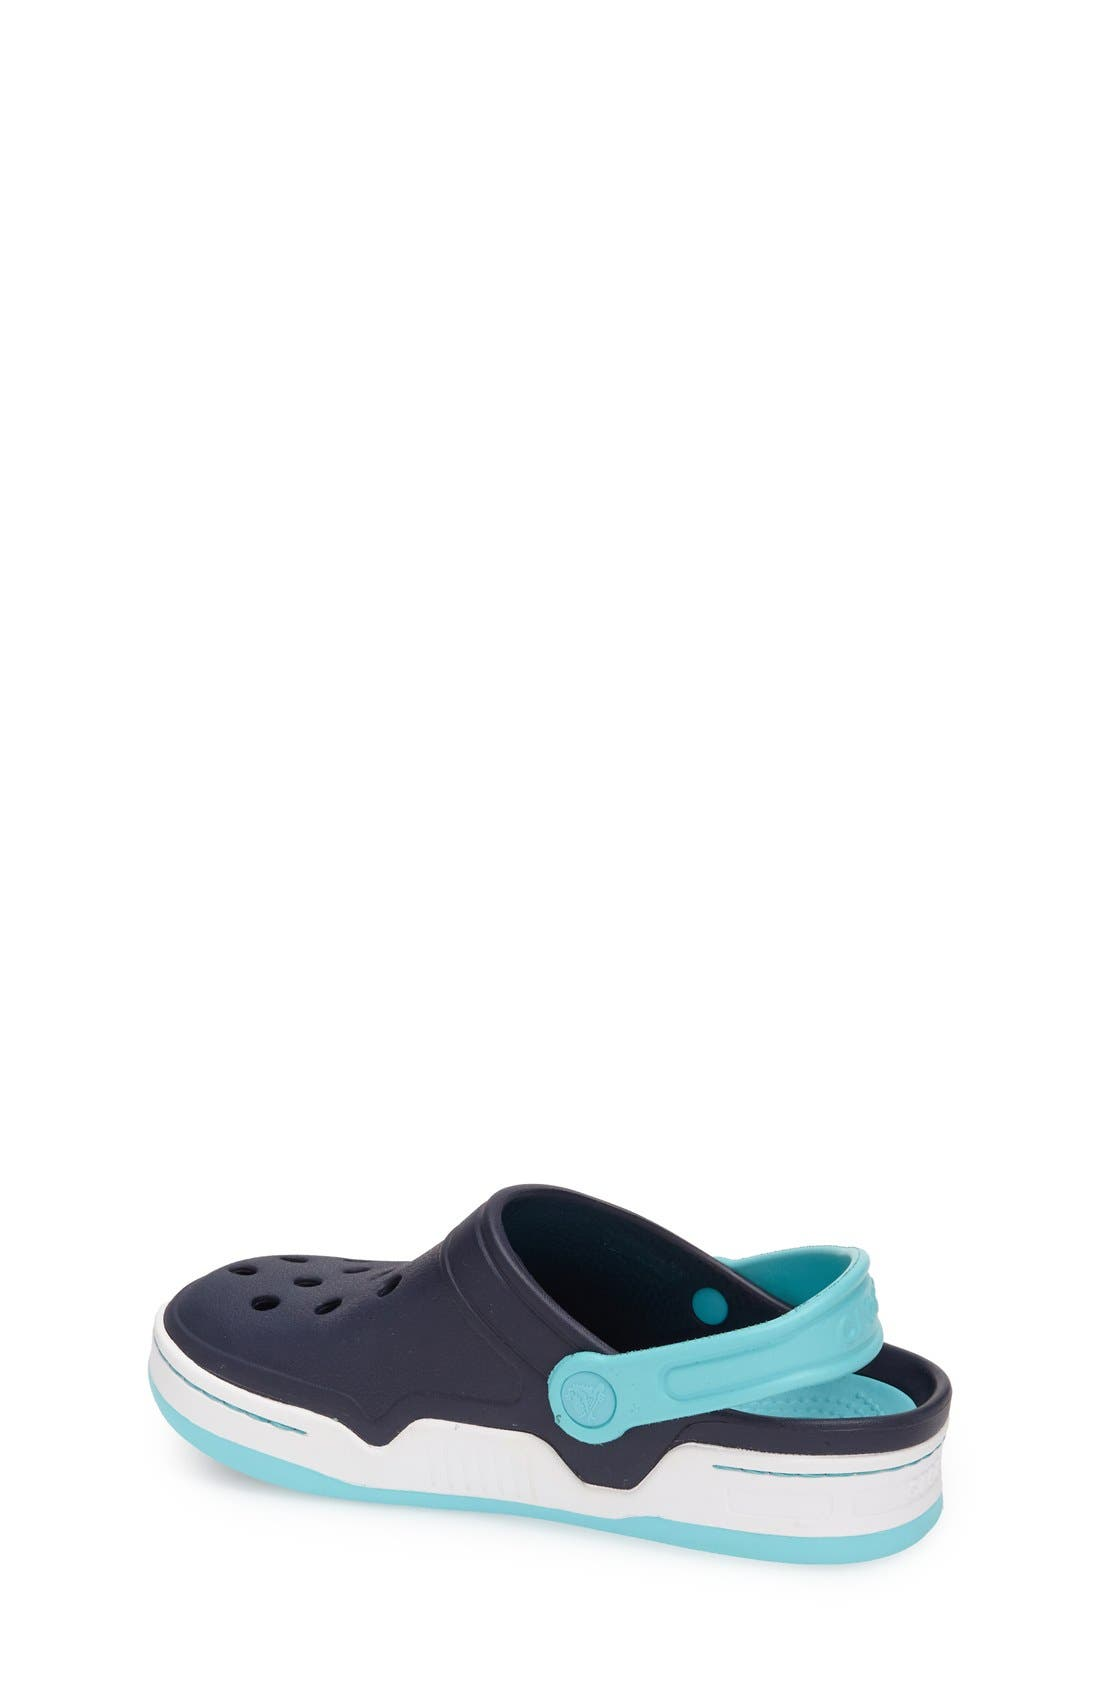 Alternate Image 2  - CROCS™ 'Front Court' Sandal (Walker, Toddler & Little Kid)